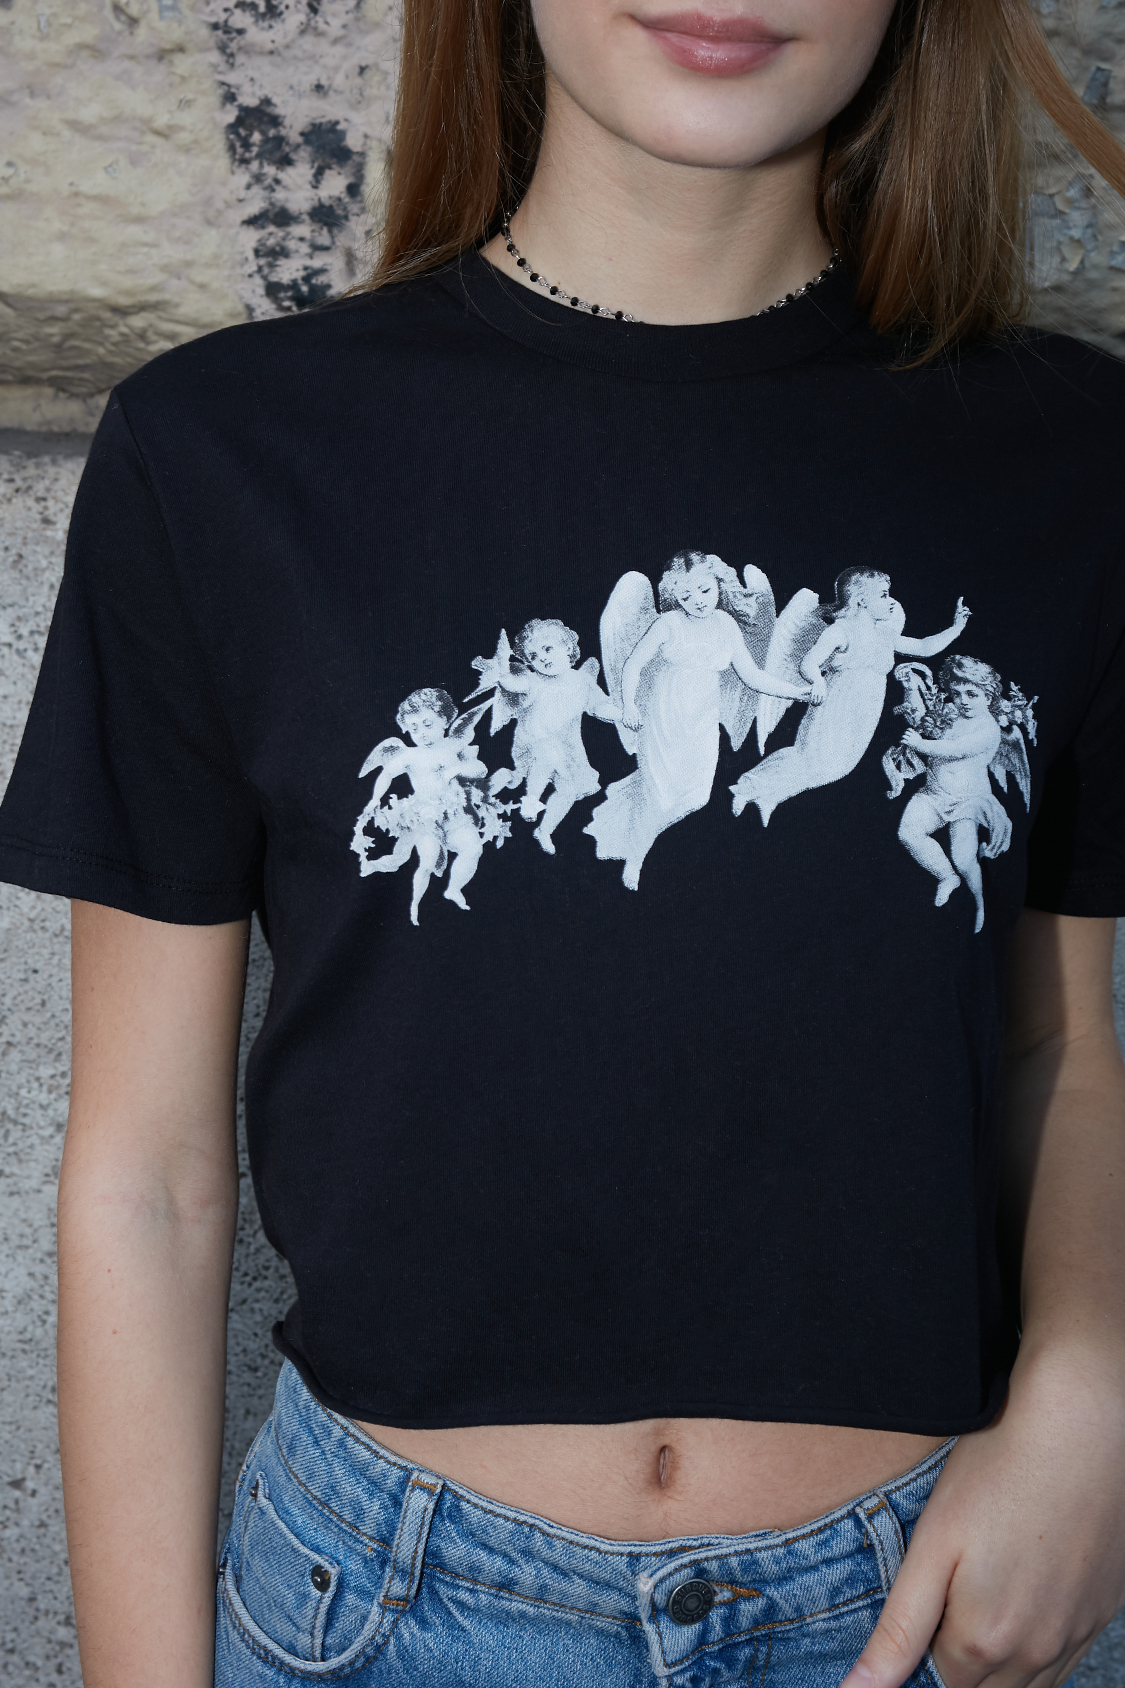 Angels printed t-shirt